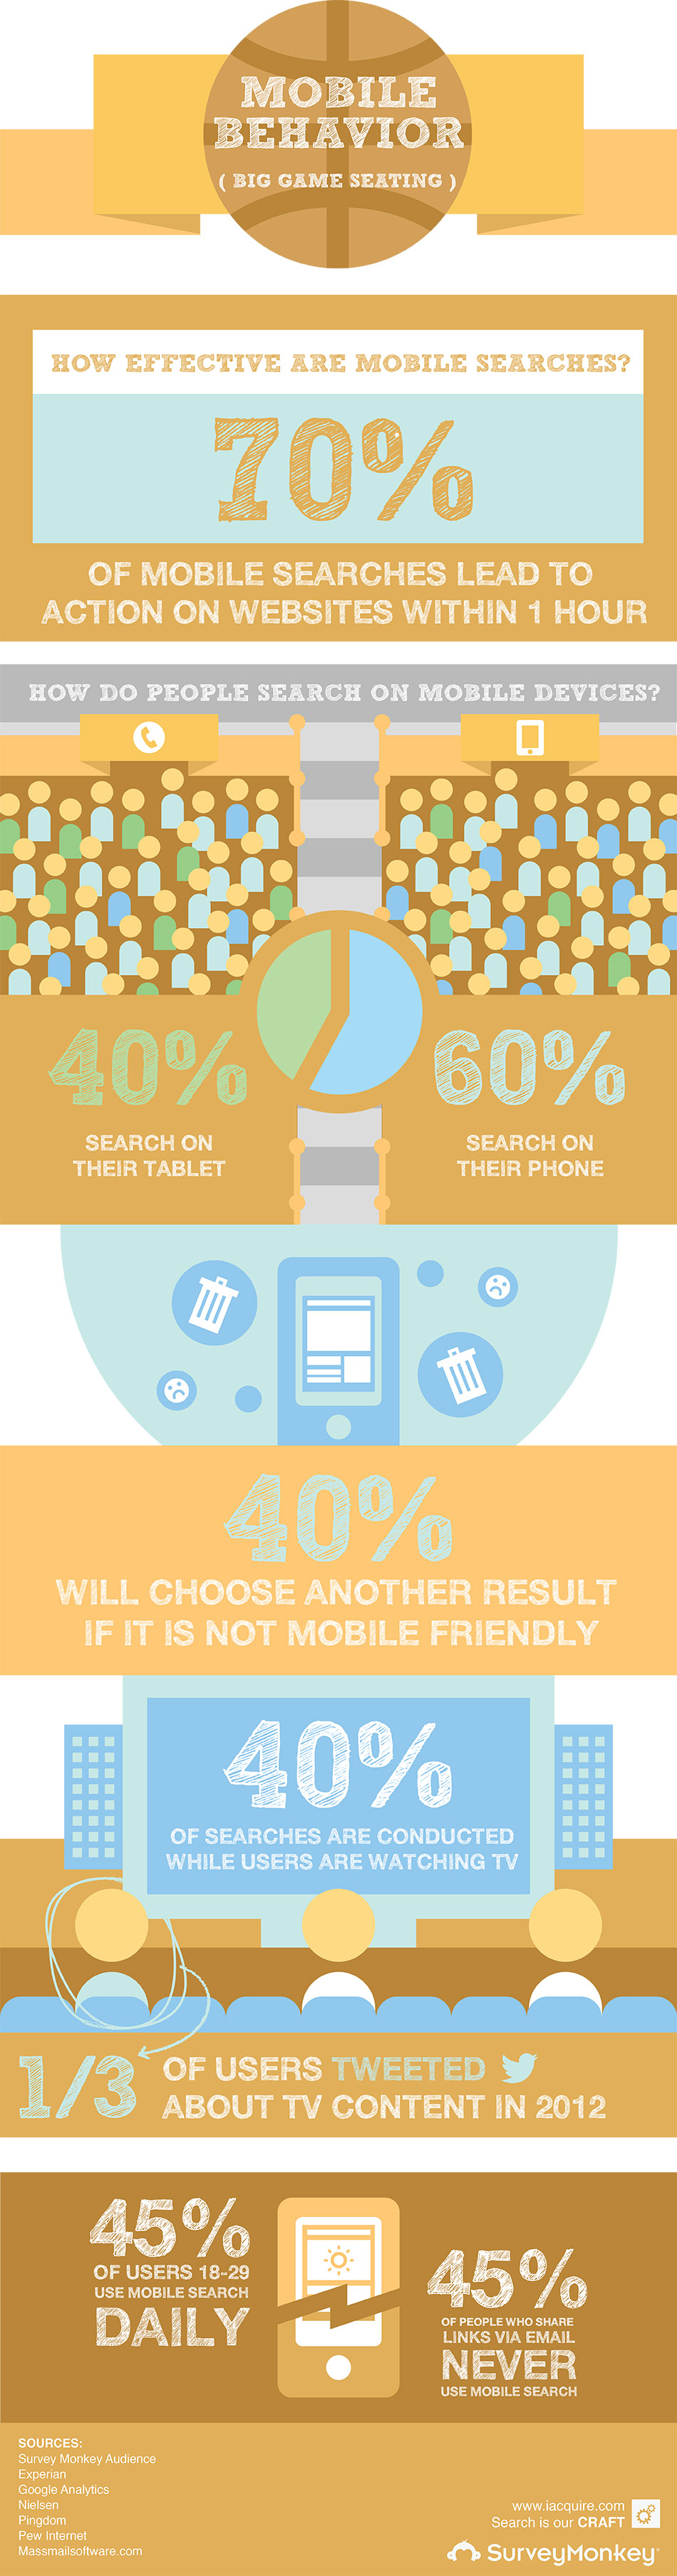 Mobile behaviour infographic